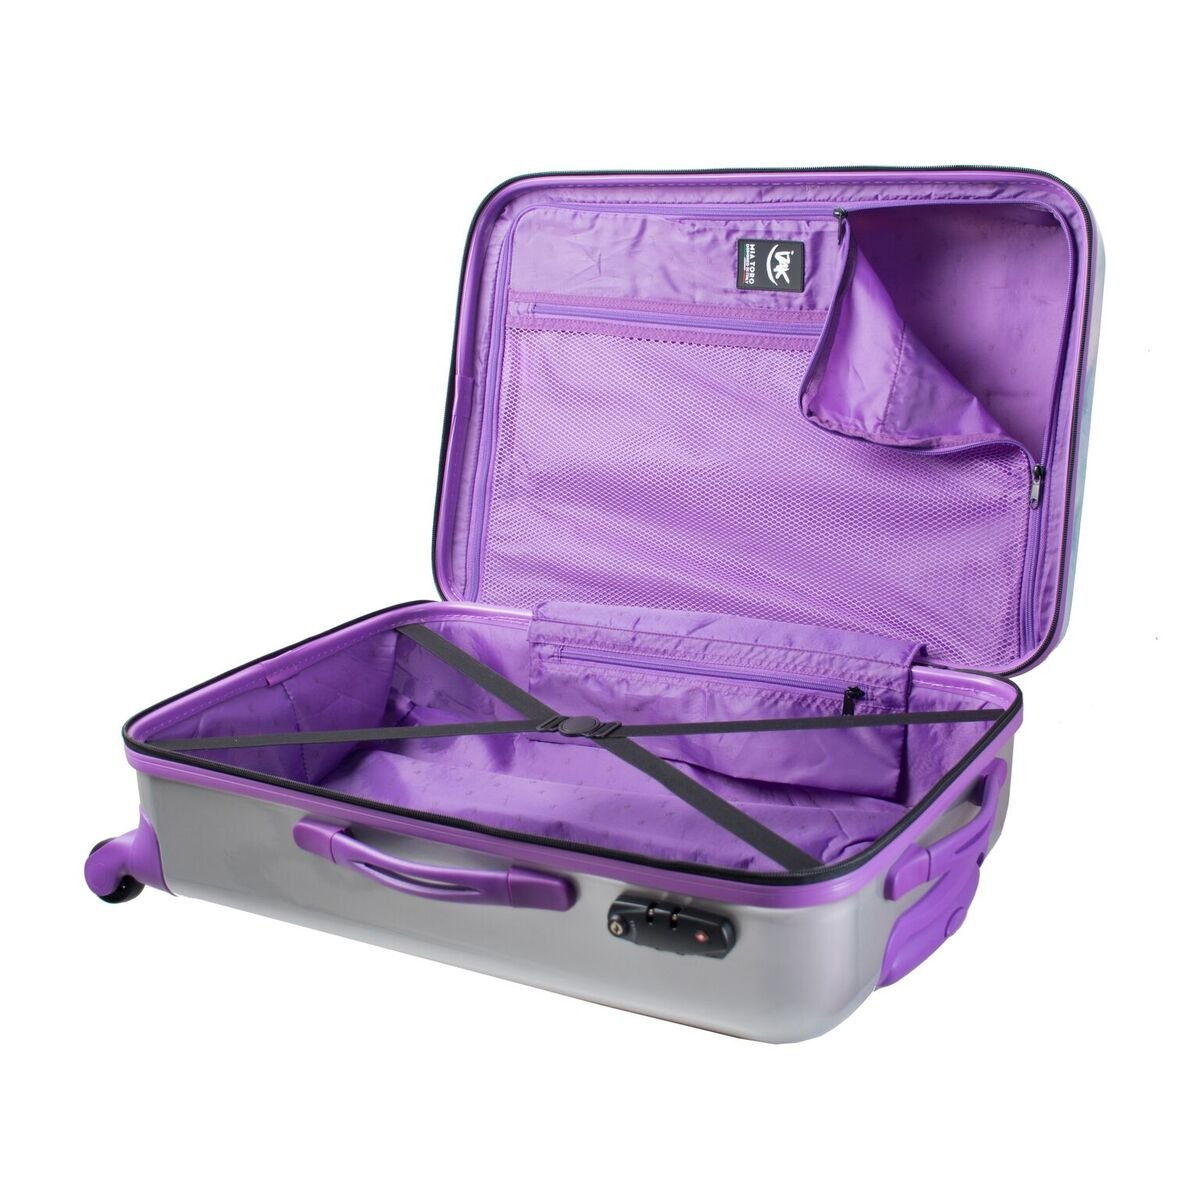 Mia Toro Izak-Paris Fashion Hard-side Spinner Luggage 3PC/Set with 10-Year Warranty--BEST GIFT for Christmas!!!!! by Mia Toro (Image #7)